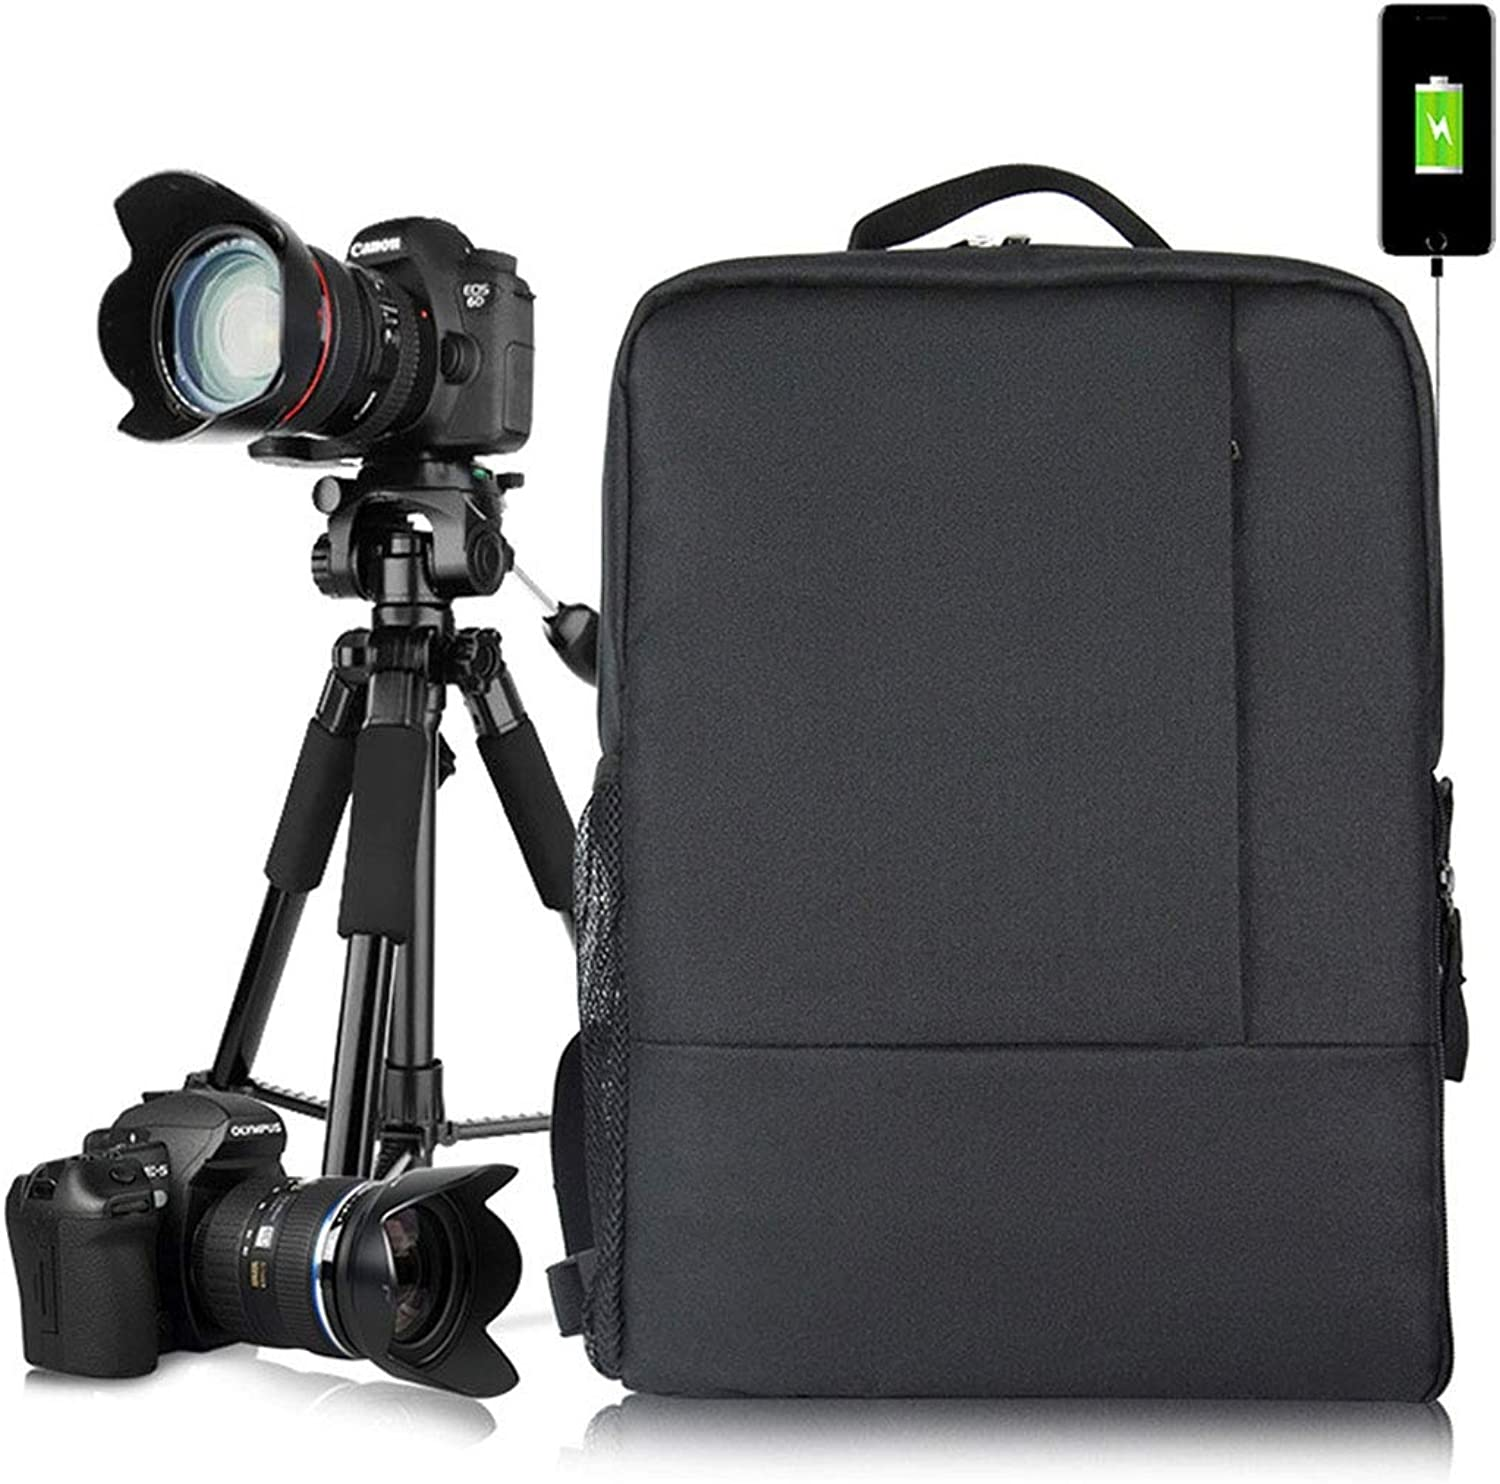 GuoBomatealliance Outdoor Bags Outdoor Bags PVC Multifunctional Travel Camera Backpackage with USB Charging Interface, Size  43  30  16cm (Camo) (color   color2)